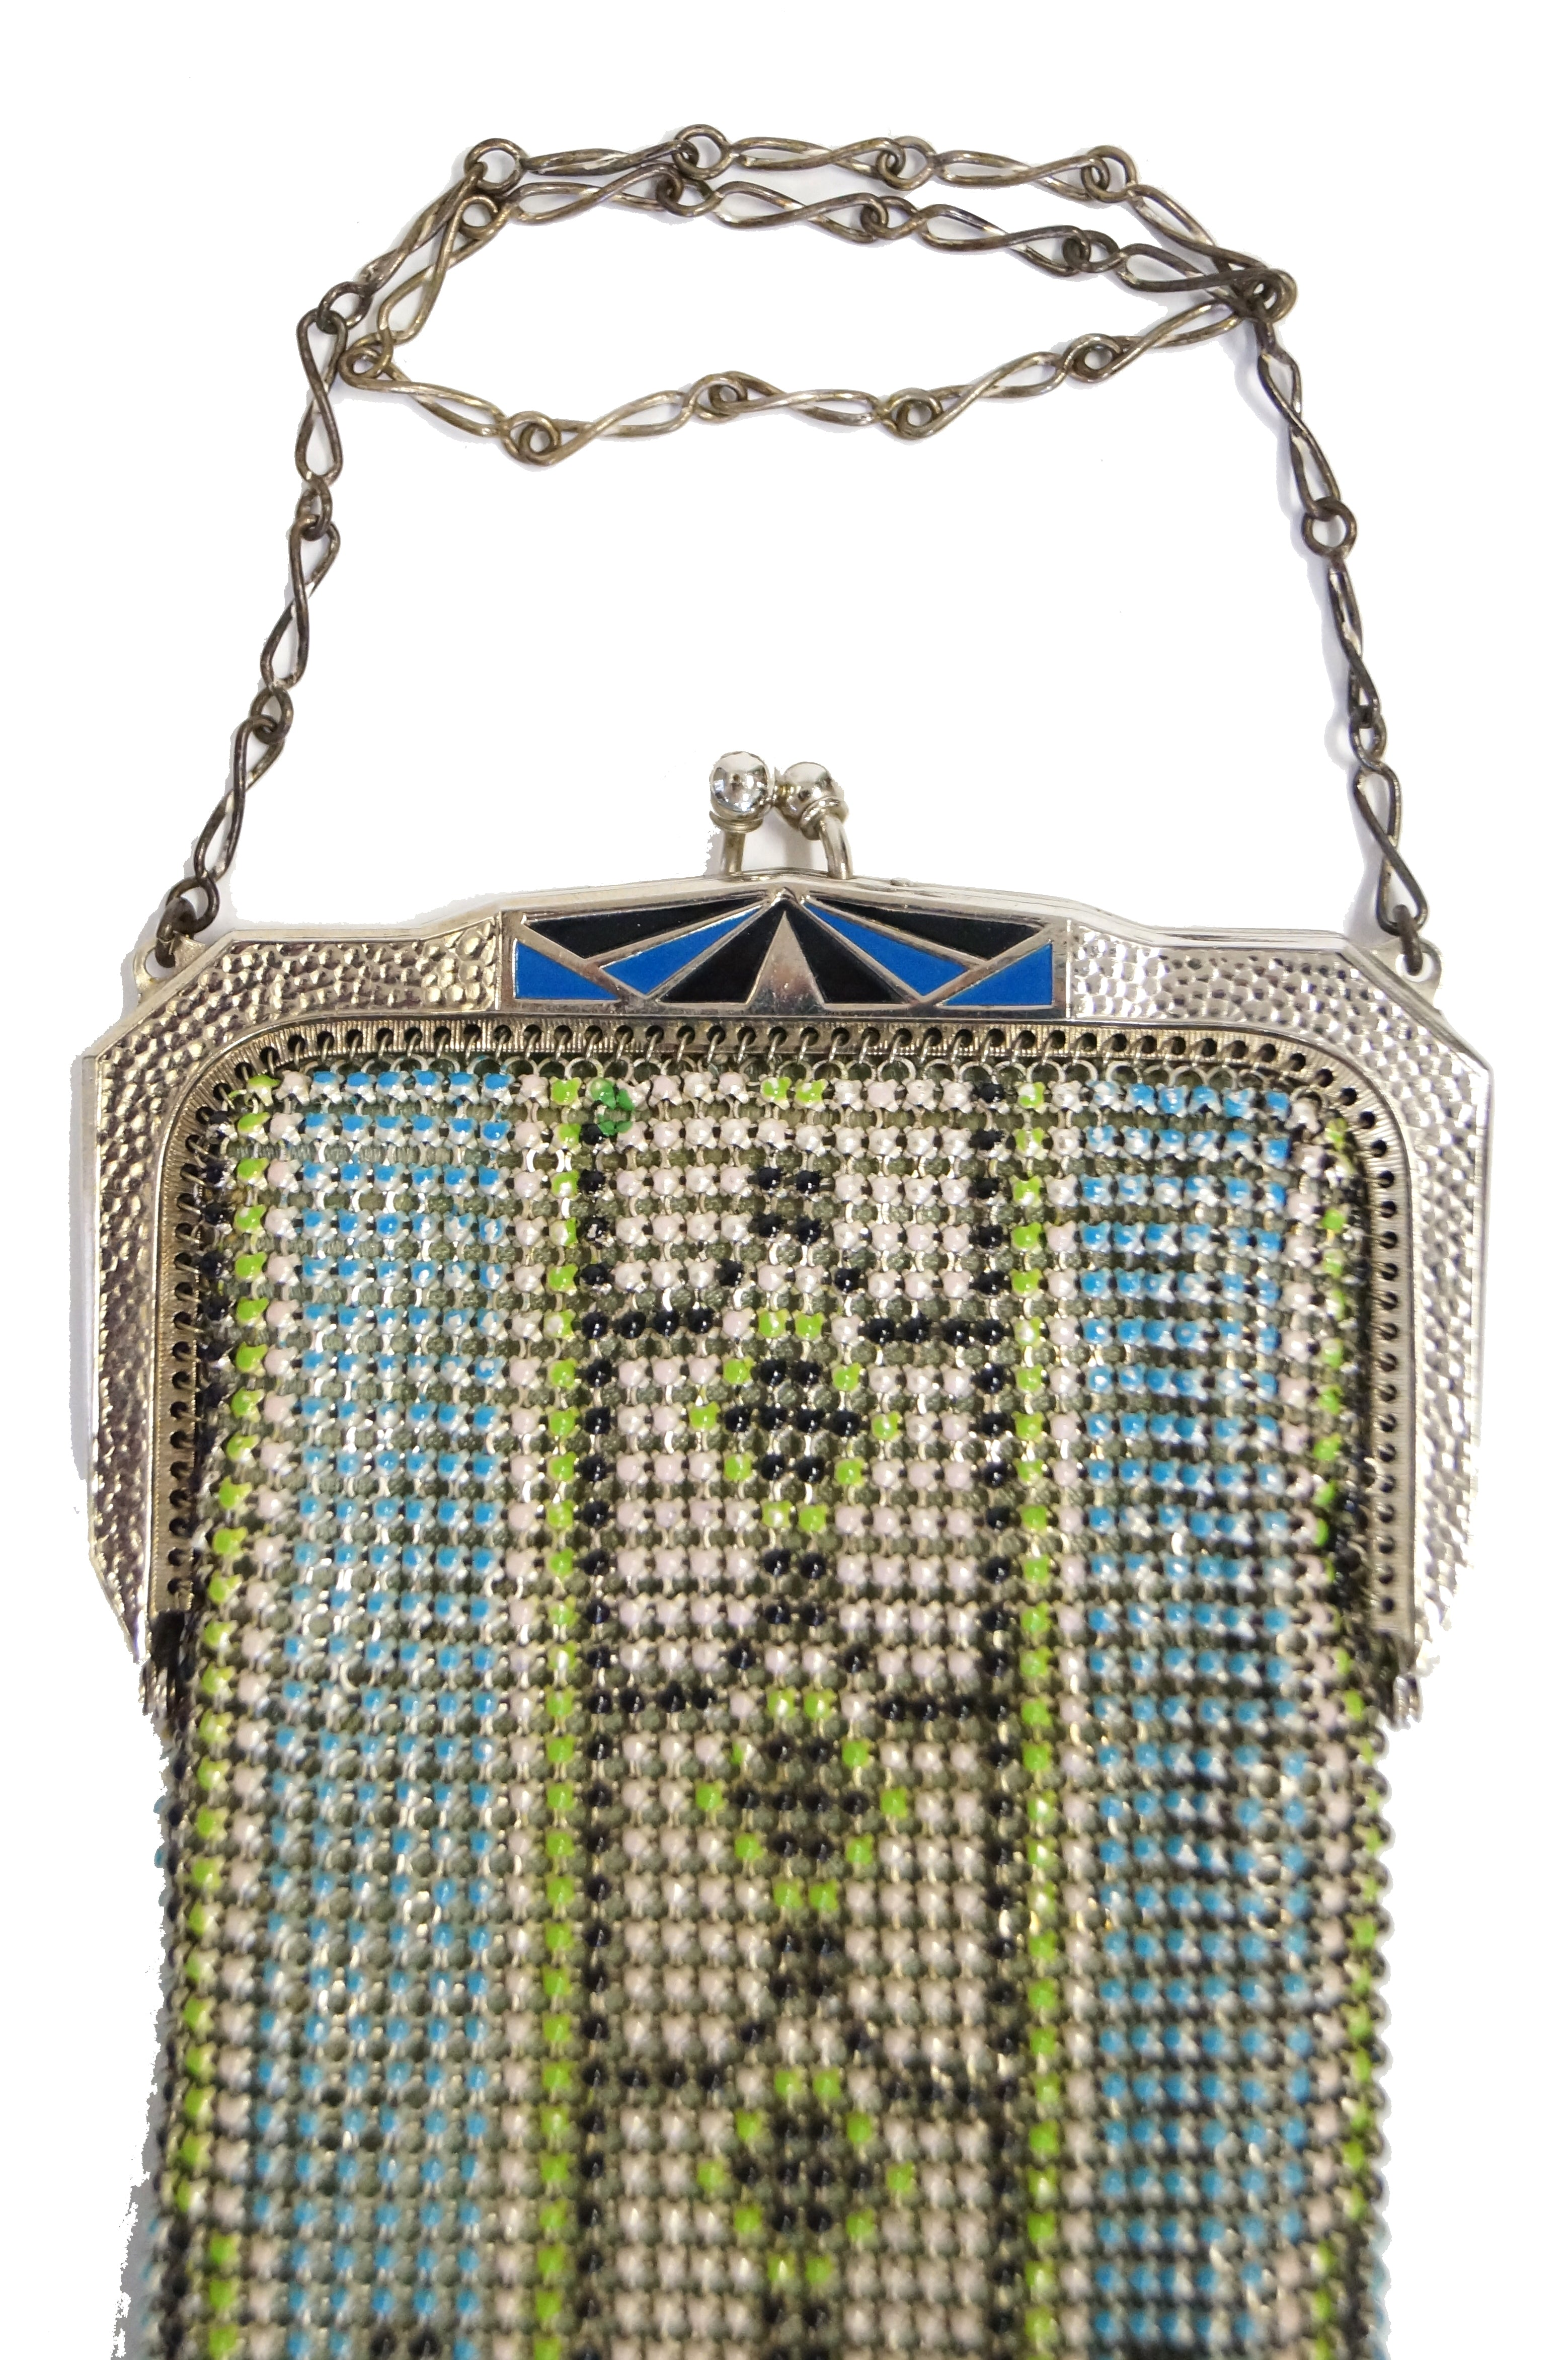 Great Art Deco Mesh Purse With Geometrics And Enamel Detail Signed Whiting Davis Periods & Styles